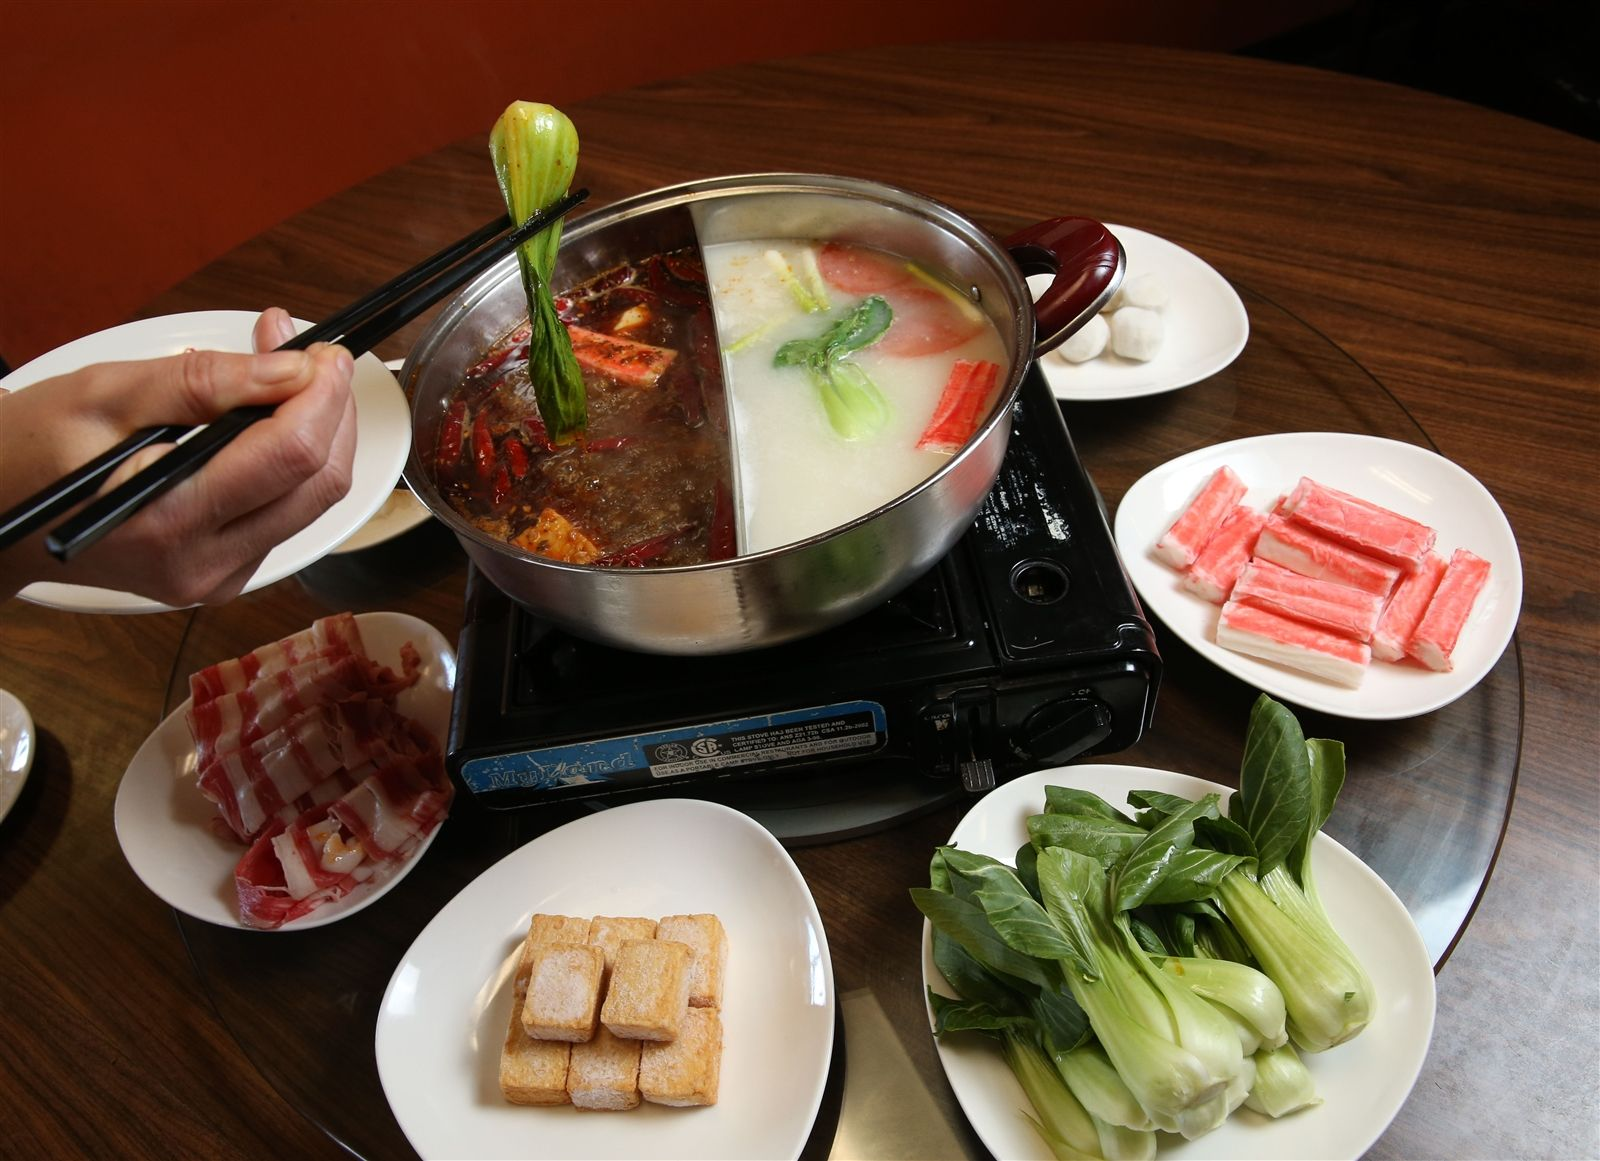 Among its collection of unique-for-WNY dishes, China Star serves Chong Qing hot pot. It's served family style, allowing diners to cook their choice of proteins and vegetables in two simmering broths, one spicy with chiles, the other mild chicken soup with scallion and tomato.